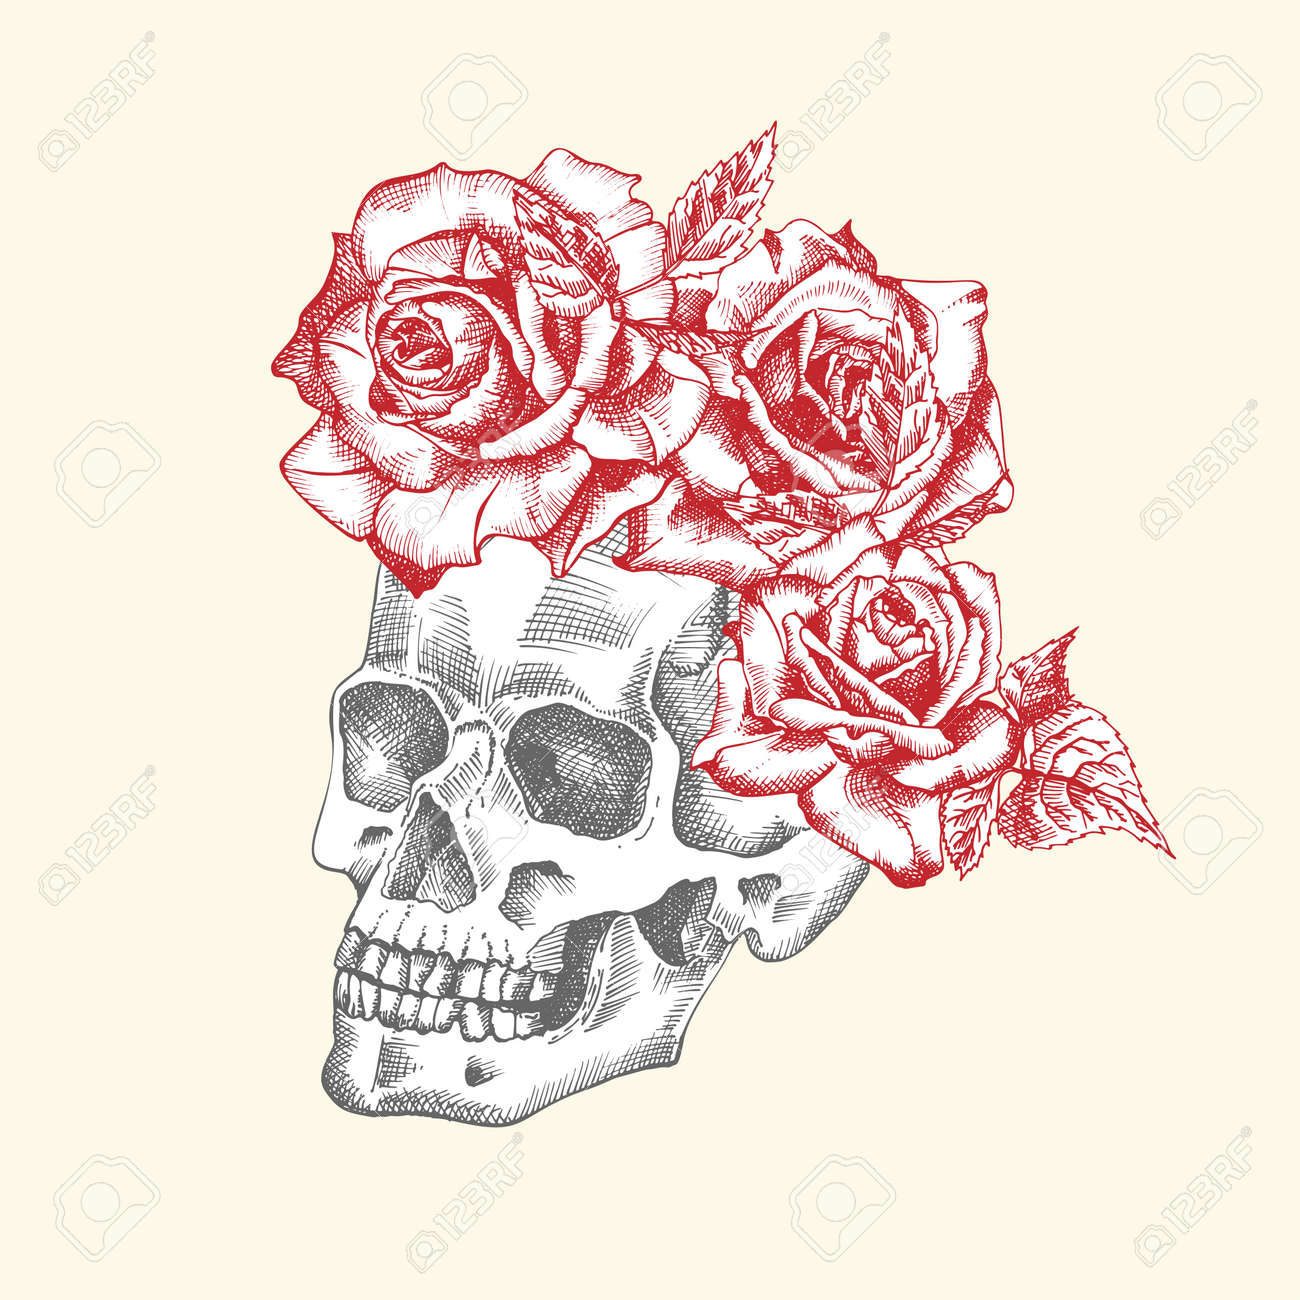 Hand drawn sketch human skull with wreath of flowers. Red roses Funny character Black graphic Engraving art isolated on white background. Vintage style. Vector - 161481828